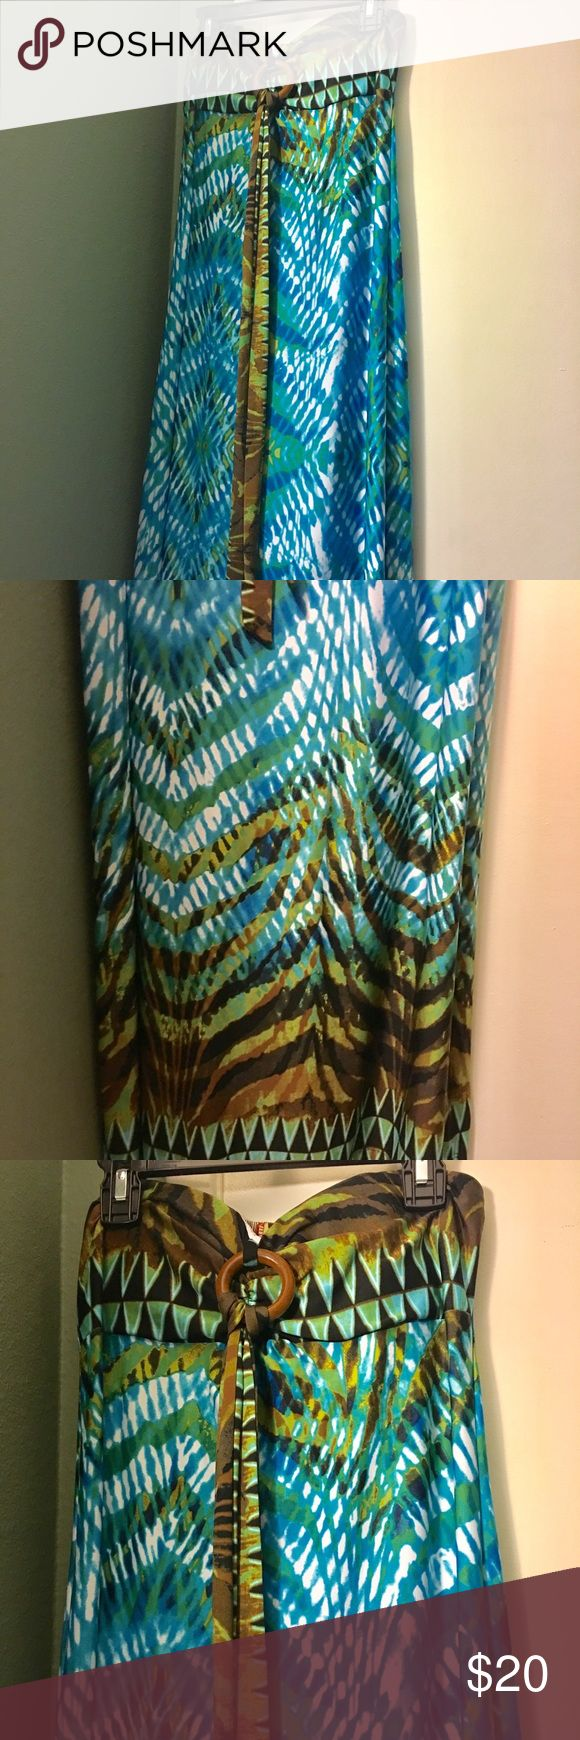 NWOT XS Long Blue Green Maxi Dress by HeartSoul NWOT XS Long Blue Green Brown Maxi Halter Dress by HeartSoul. Can hem the bottom if too long. Soft thin material. Never worn. Padded bra area. Has wooded circle with tie to tie at back of neck area. HeartSoul Dresses Maxi